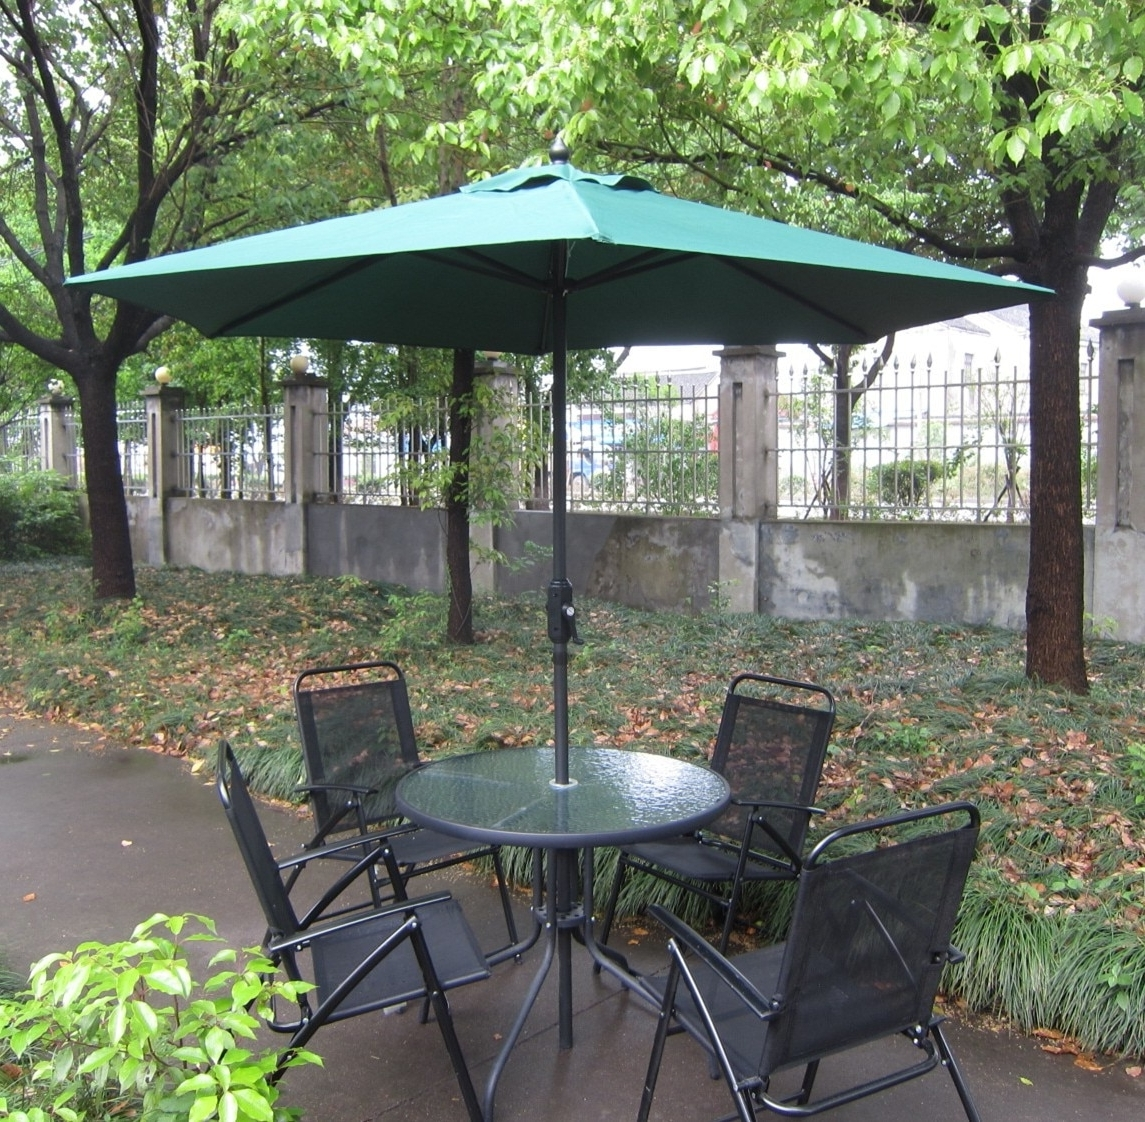 Fashionable European Patio Umbrellas Regarding European Umbrella Outdoor Umbrellas Uv Sun Base Iron Pillar Holder (View 11 of 20)